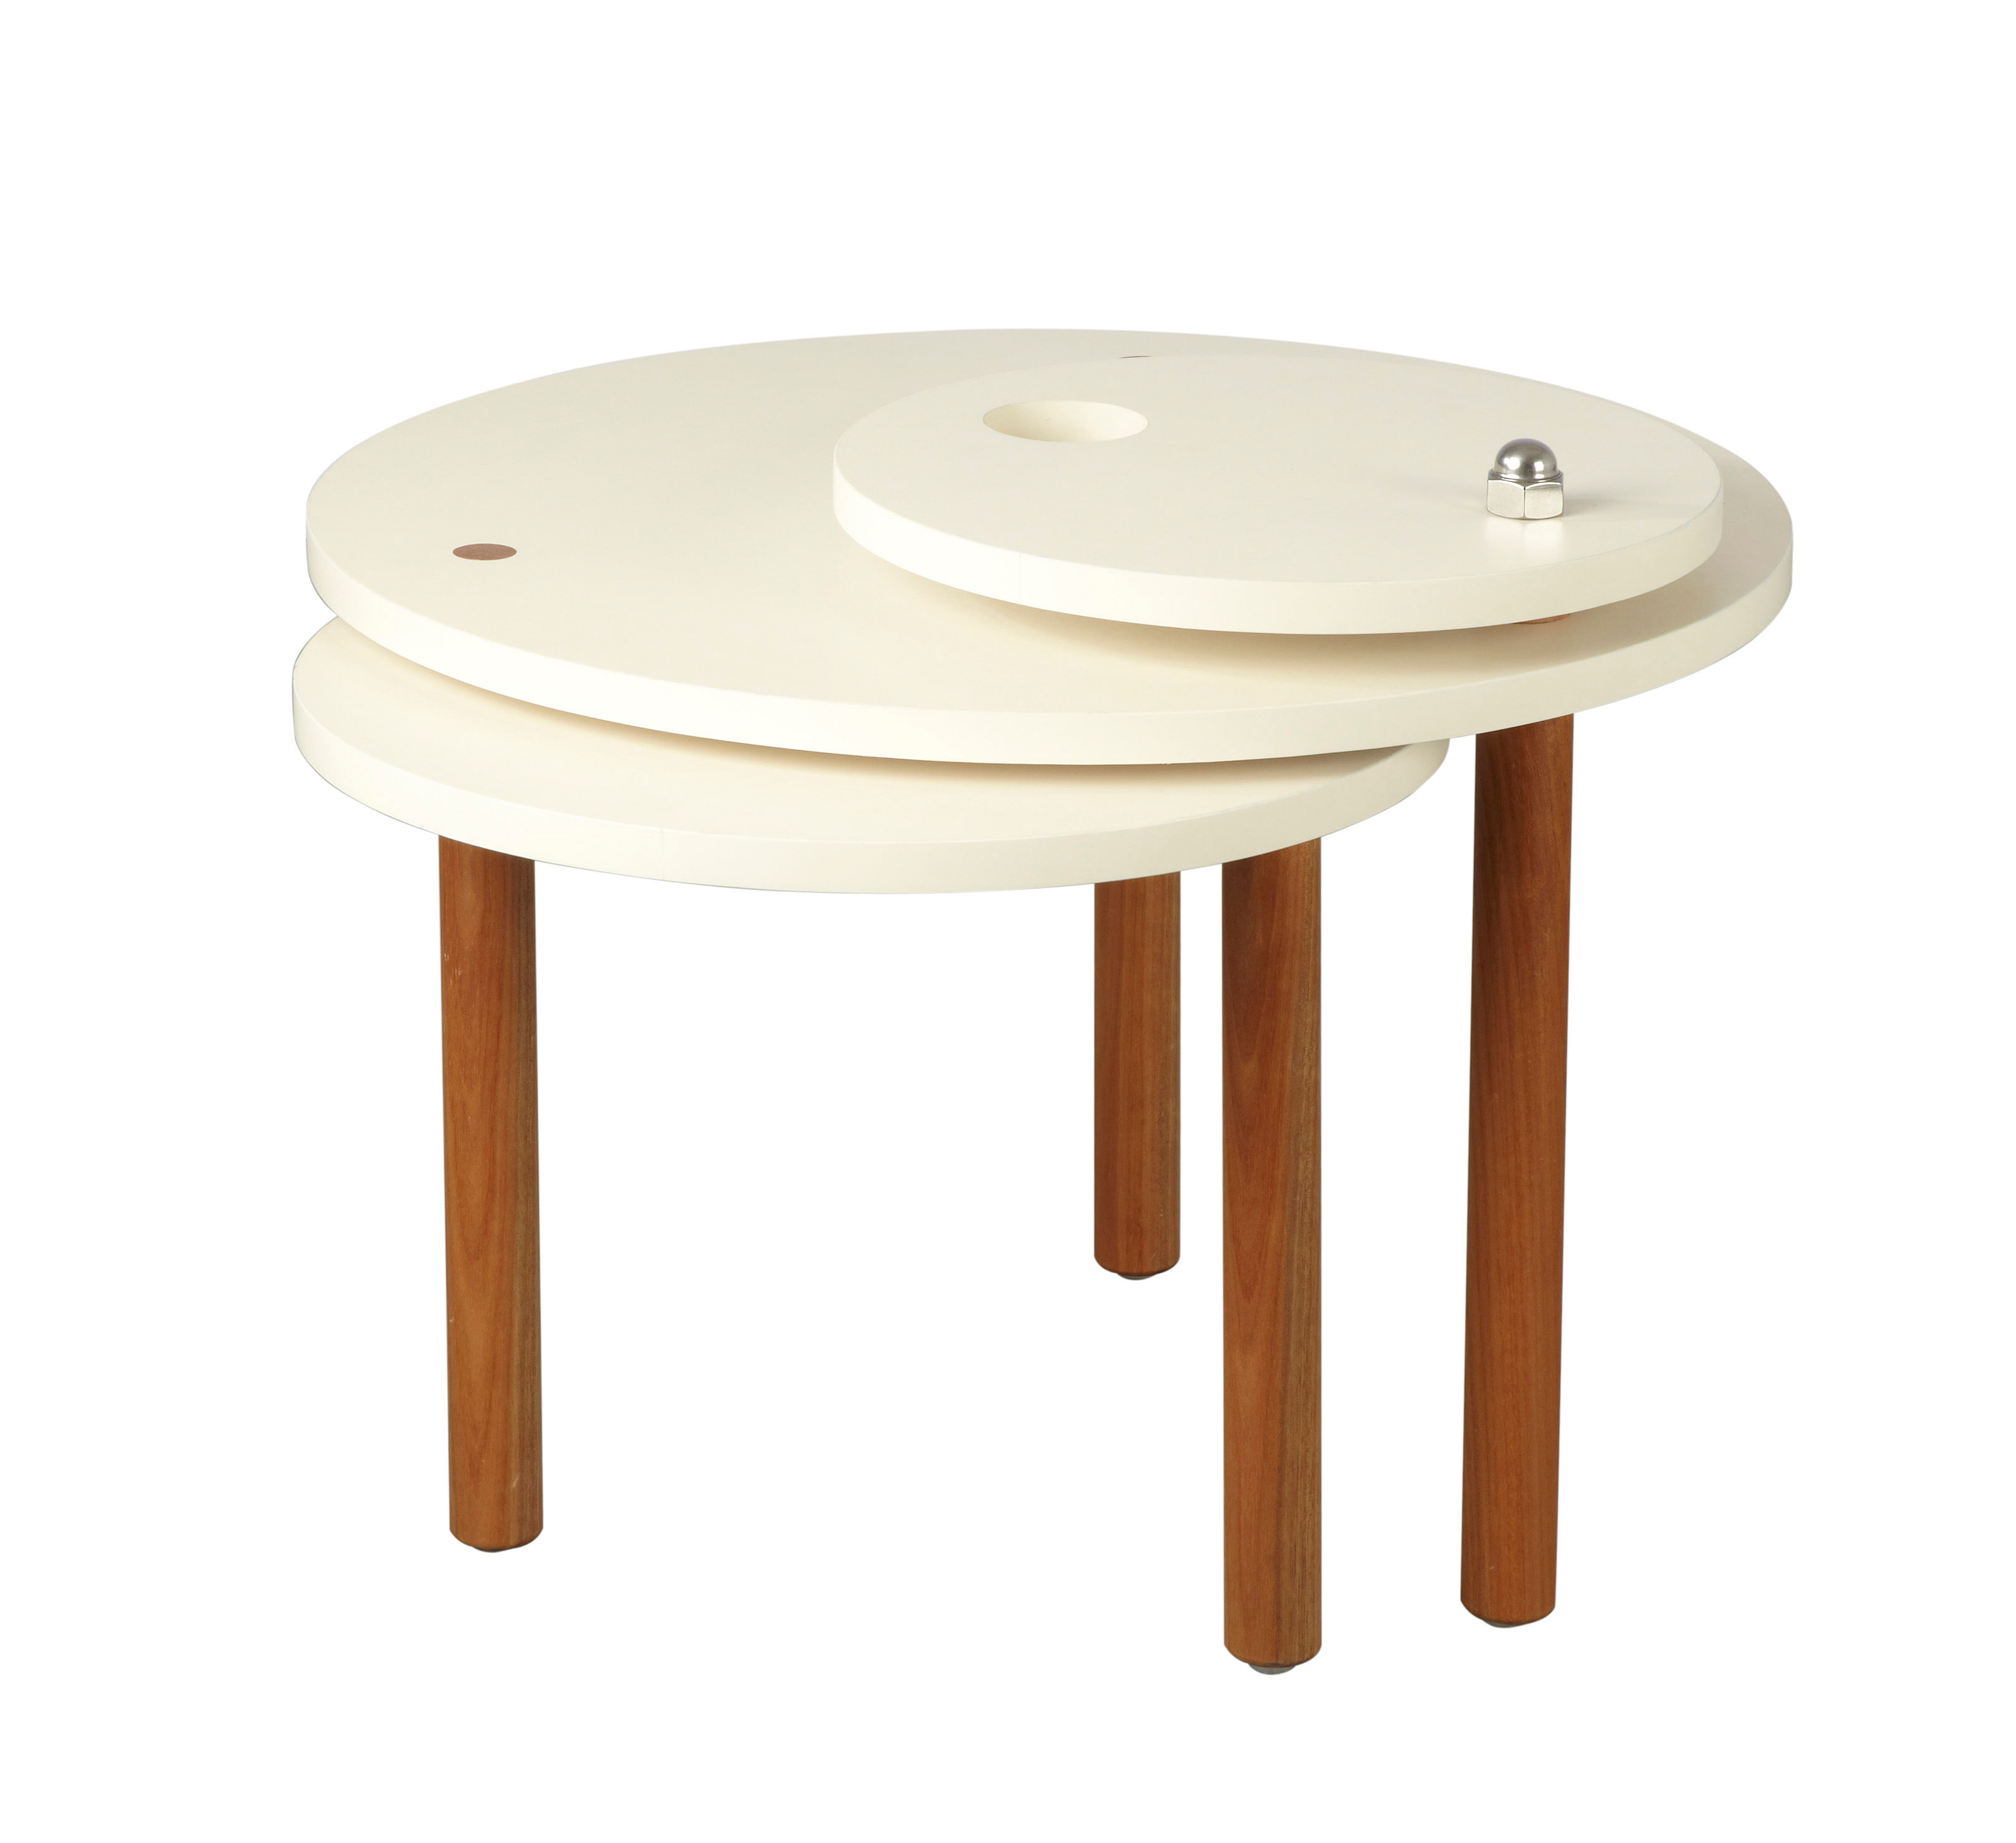 Space Saving Dining Table Versatile Tables And Their Role